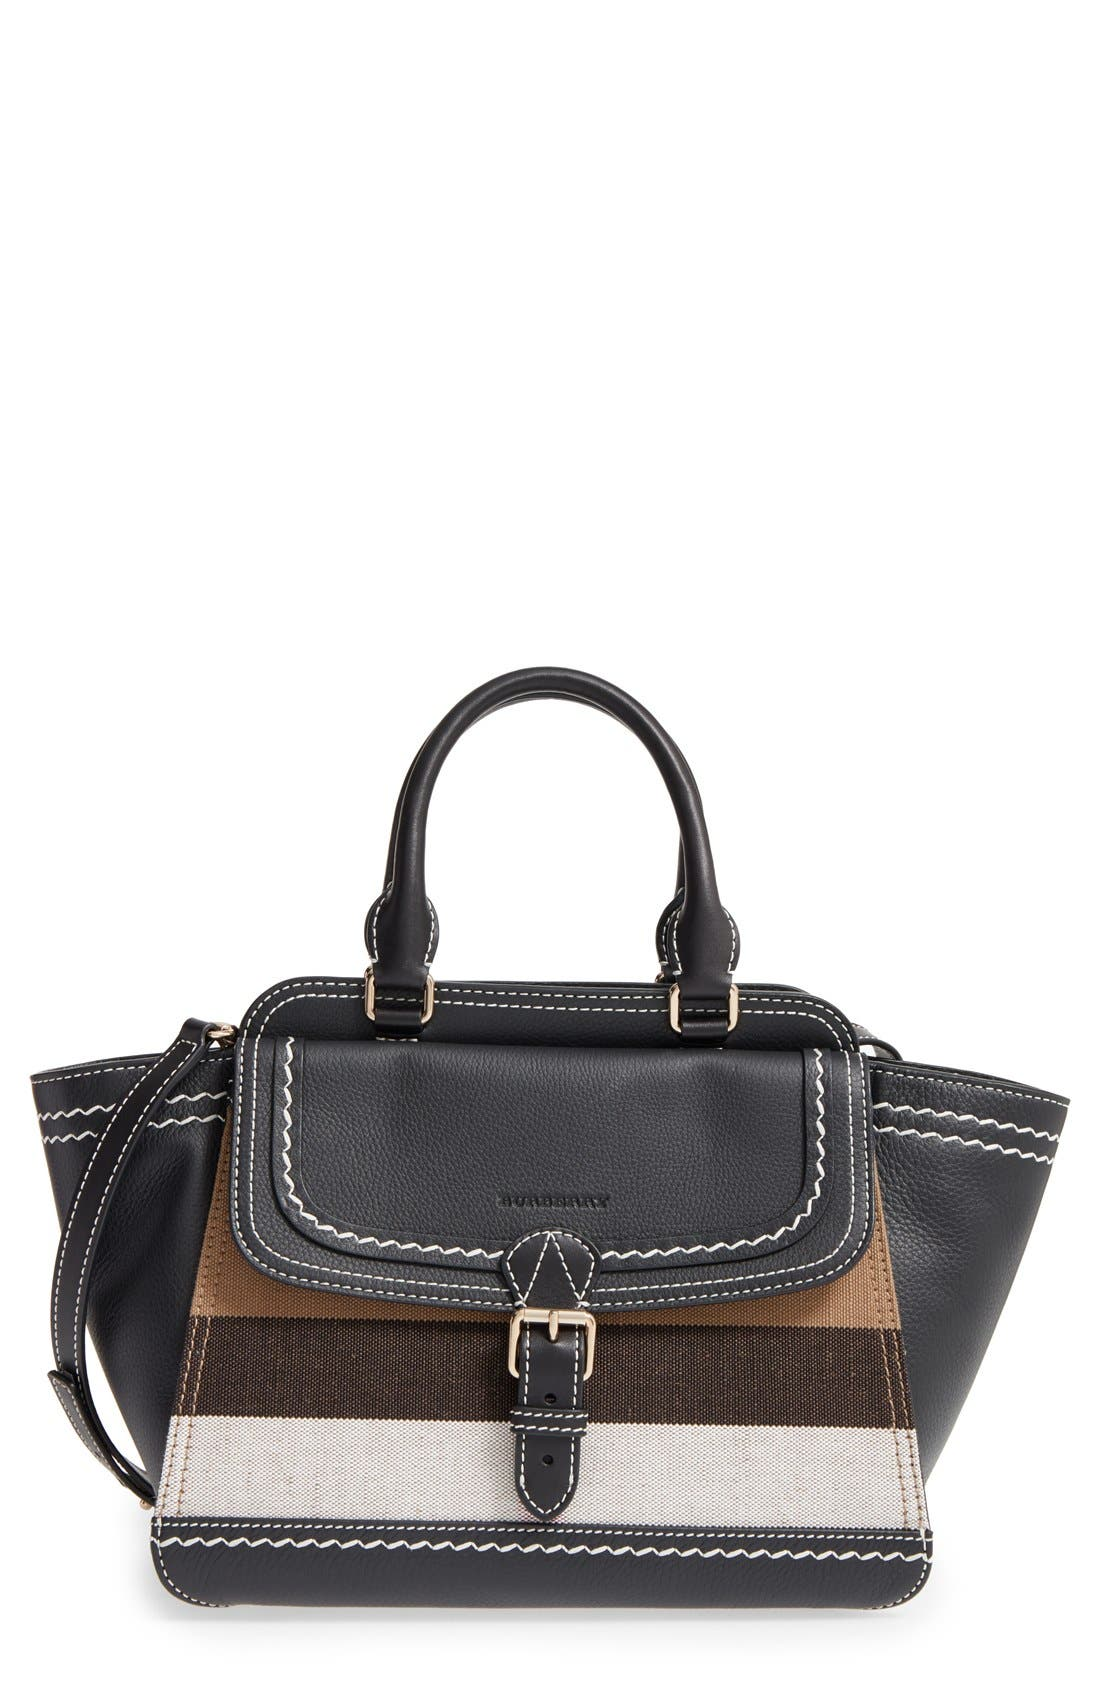 Alternate Image 1 Selected - Burberry Medium Harcourt Check & Leather Tote